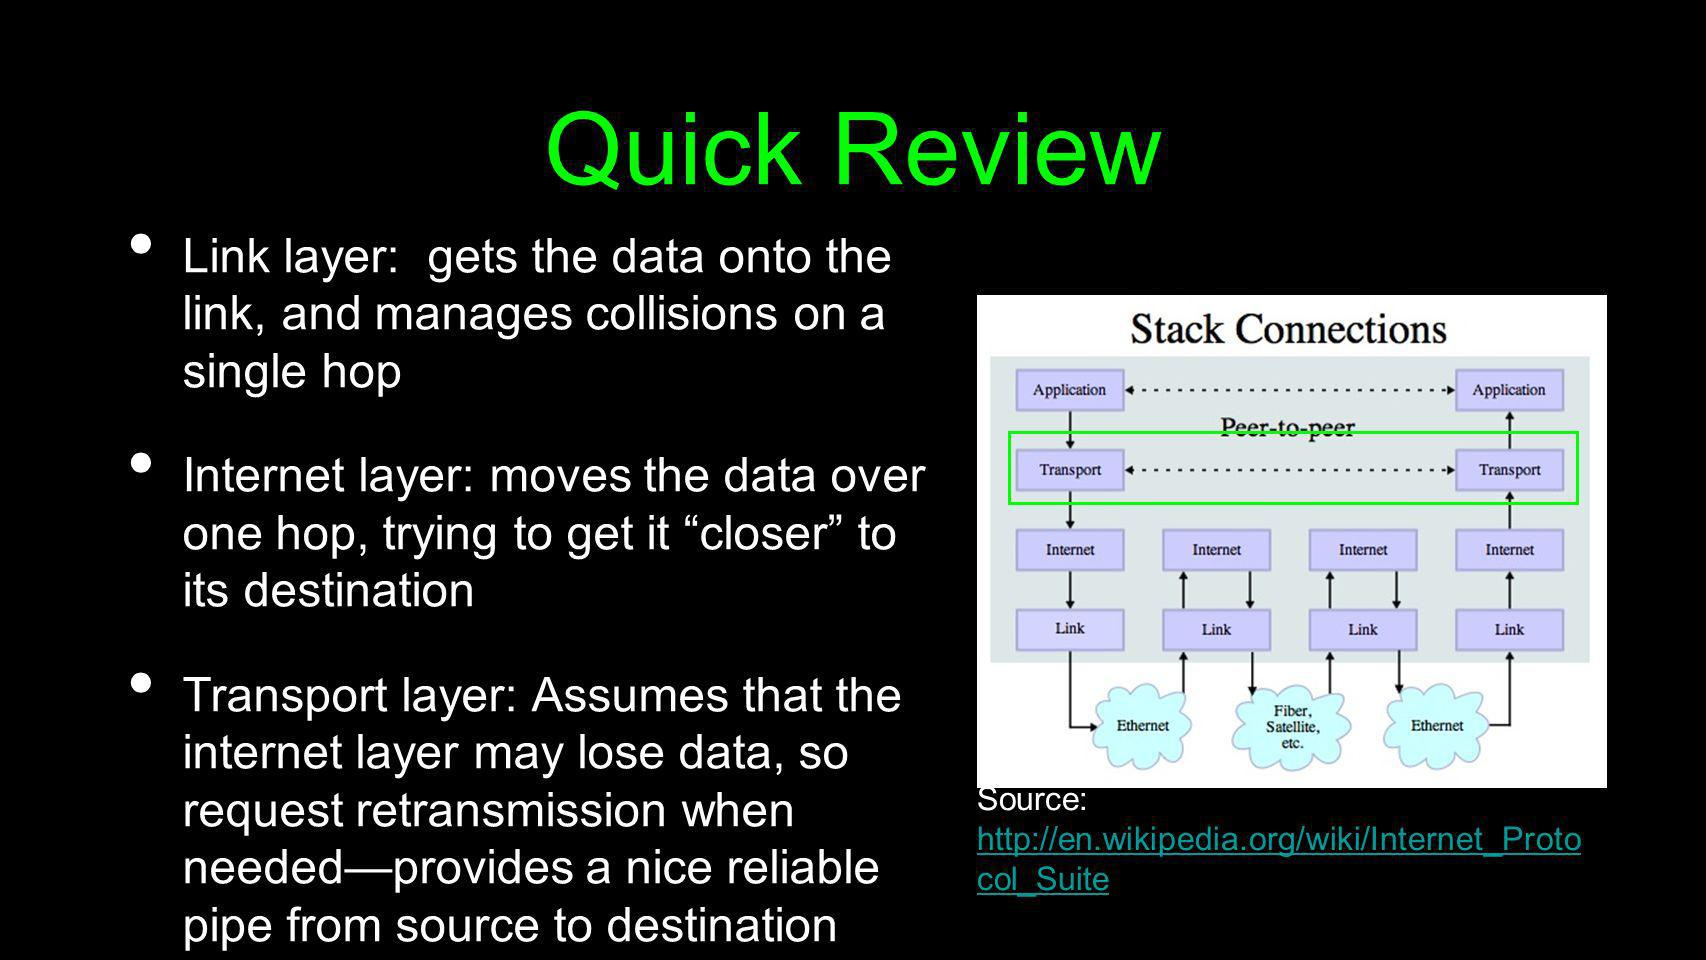 Quick ReviewLink layer: gets the data onto the link, and manages collisions on a single hop.